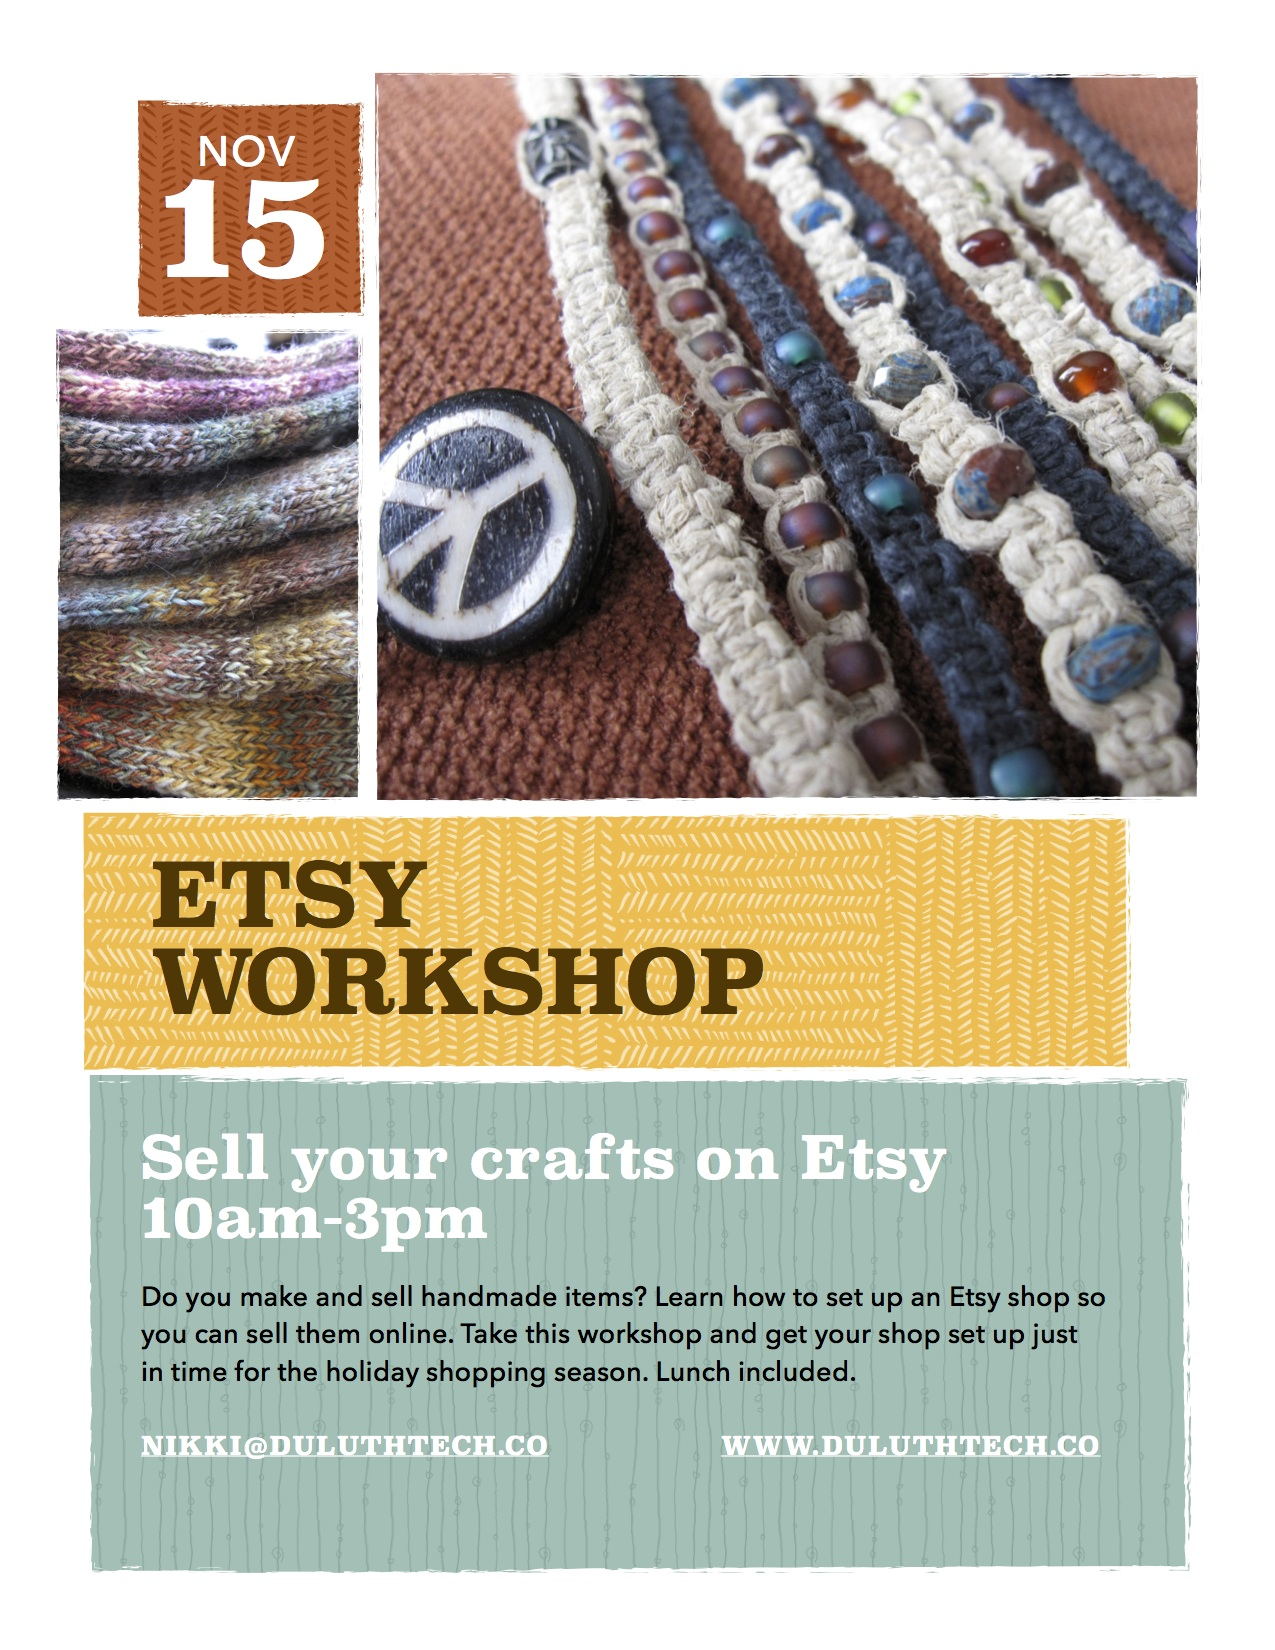 Etsy workshop learn how to sell your handmade crafts on for Selling crafts online etsy